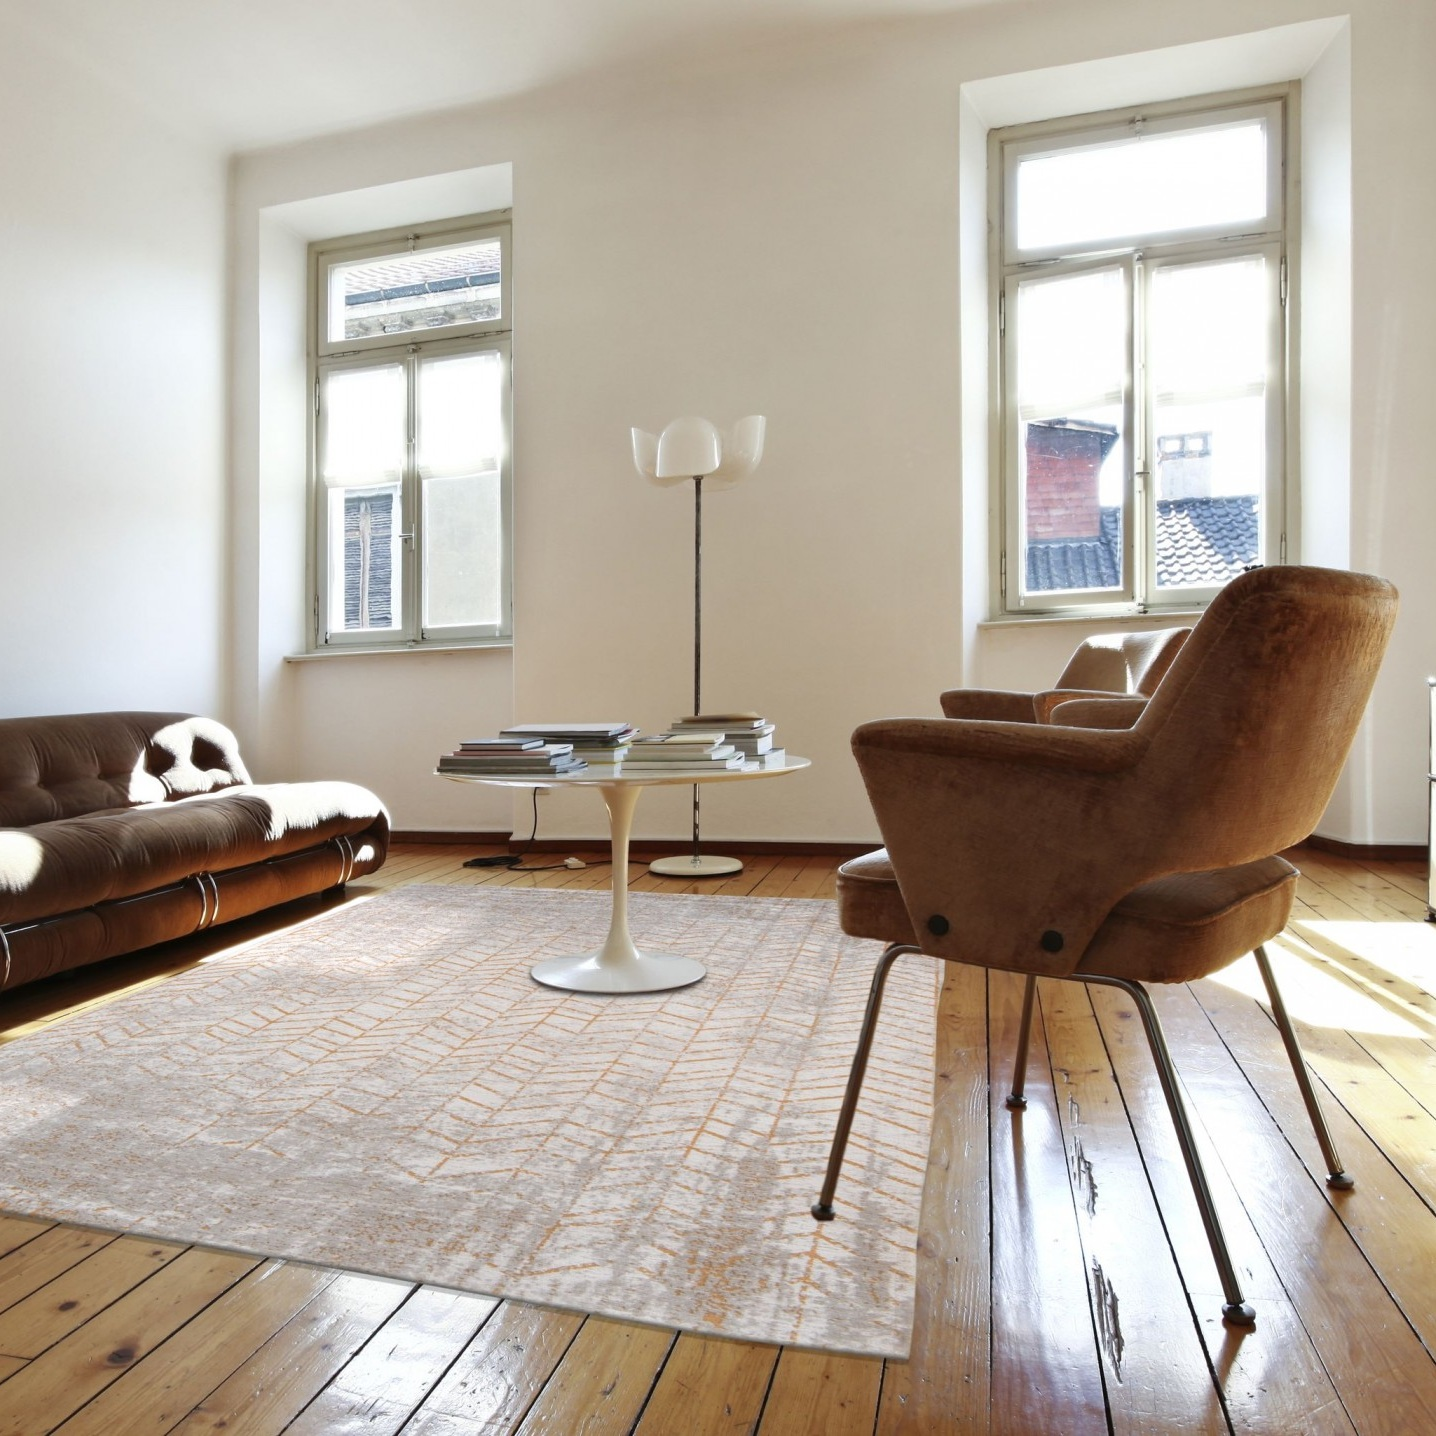 Rugs - It may not be so obvious, but dark flooring can bring a cold feel to a room that doesn't get much light. One way to combat this, other than replacing your flooring, is to place a large light coloured rug on the floor, this is a great way to instantly make a room feel brighter.